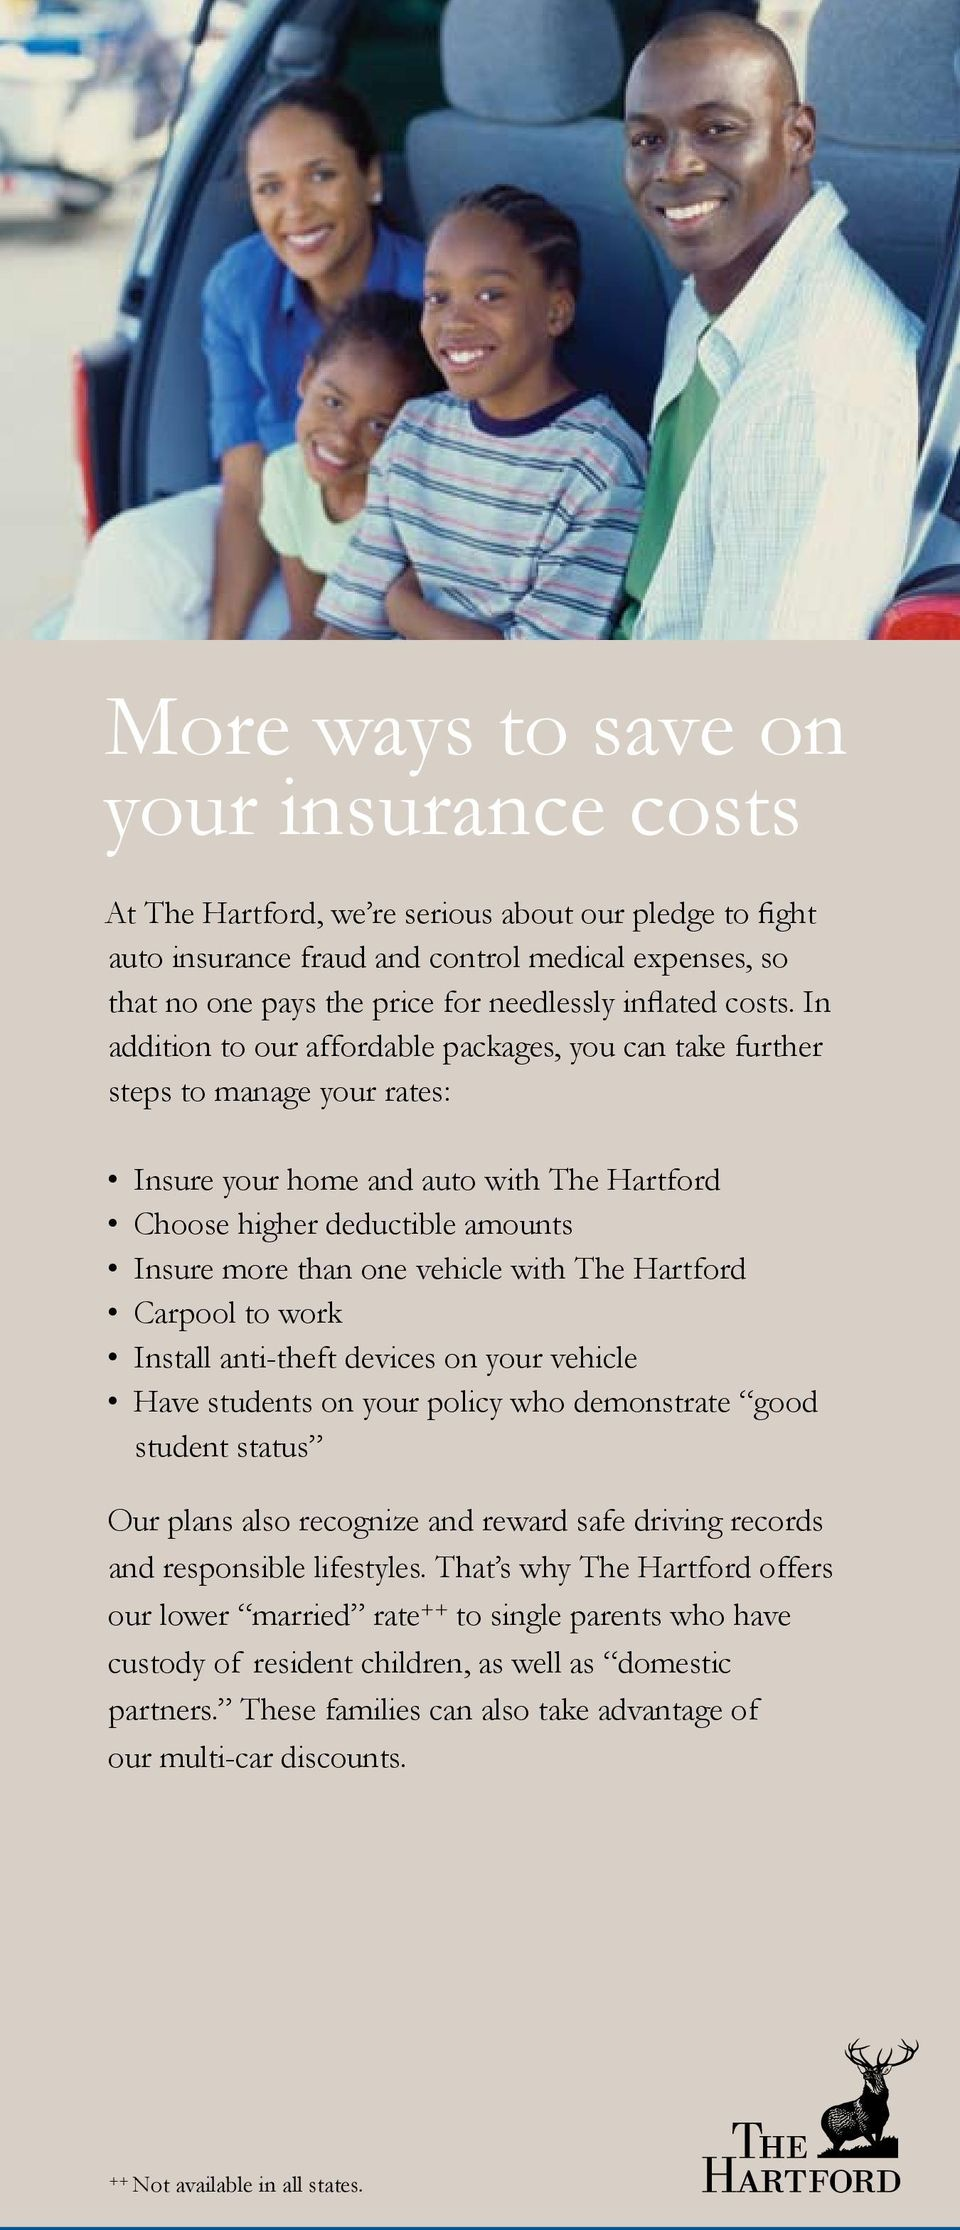 In addition to our affordable packages, you can take further steps to manage your rates: Insure your home and auto with The Hartford Choose higher deductible amounts Insure more than one vehicle with